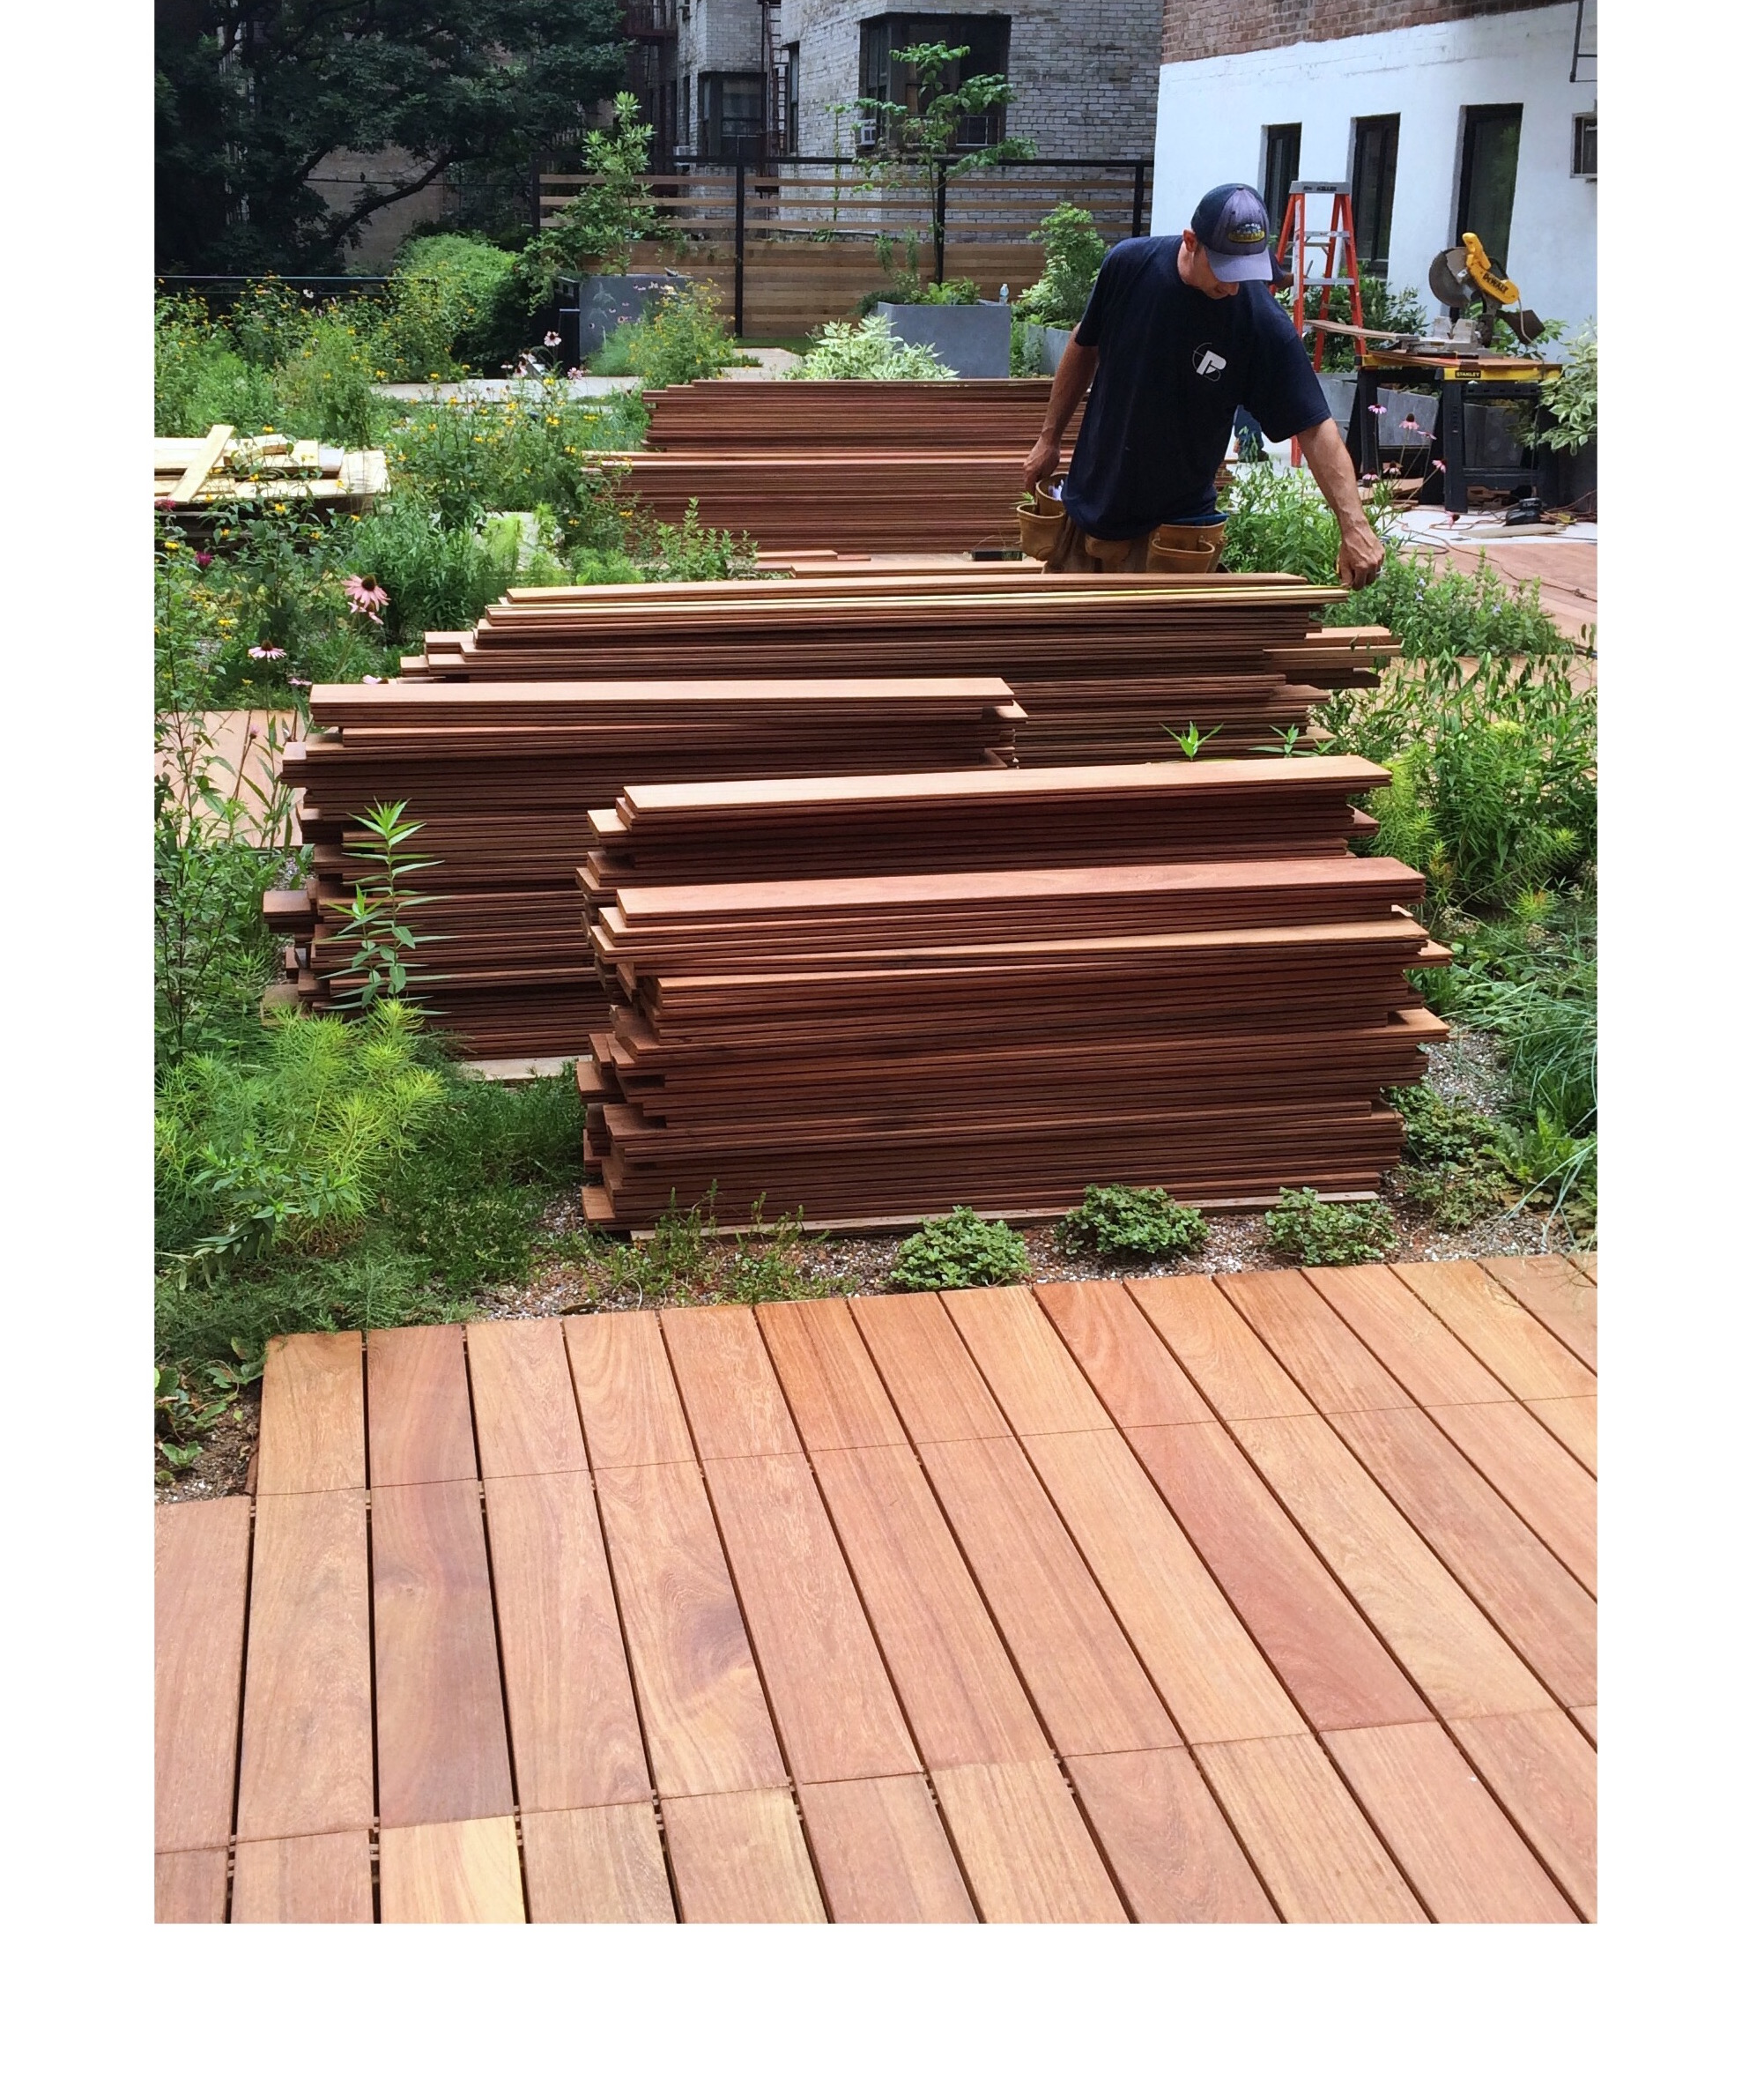 Sustainable manchiche decking at simbi tica living roof for Sustainable decking